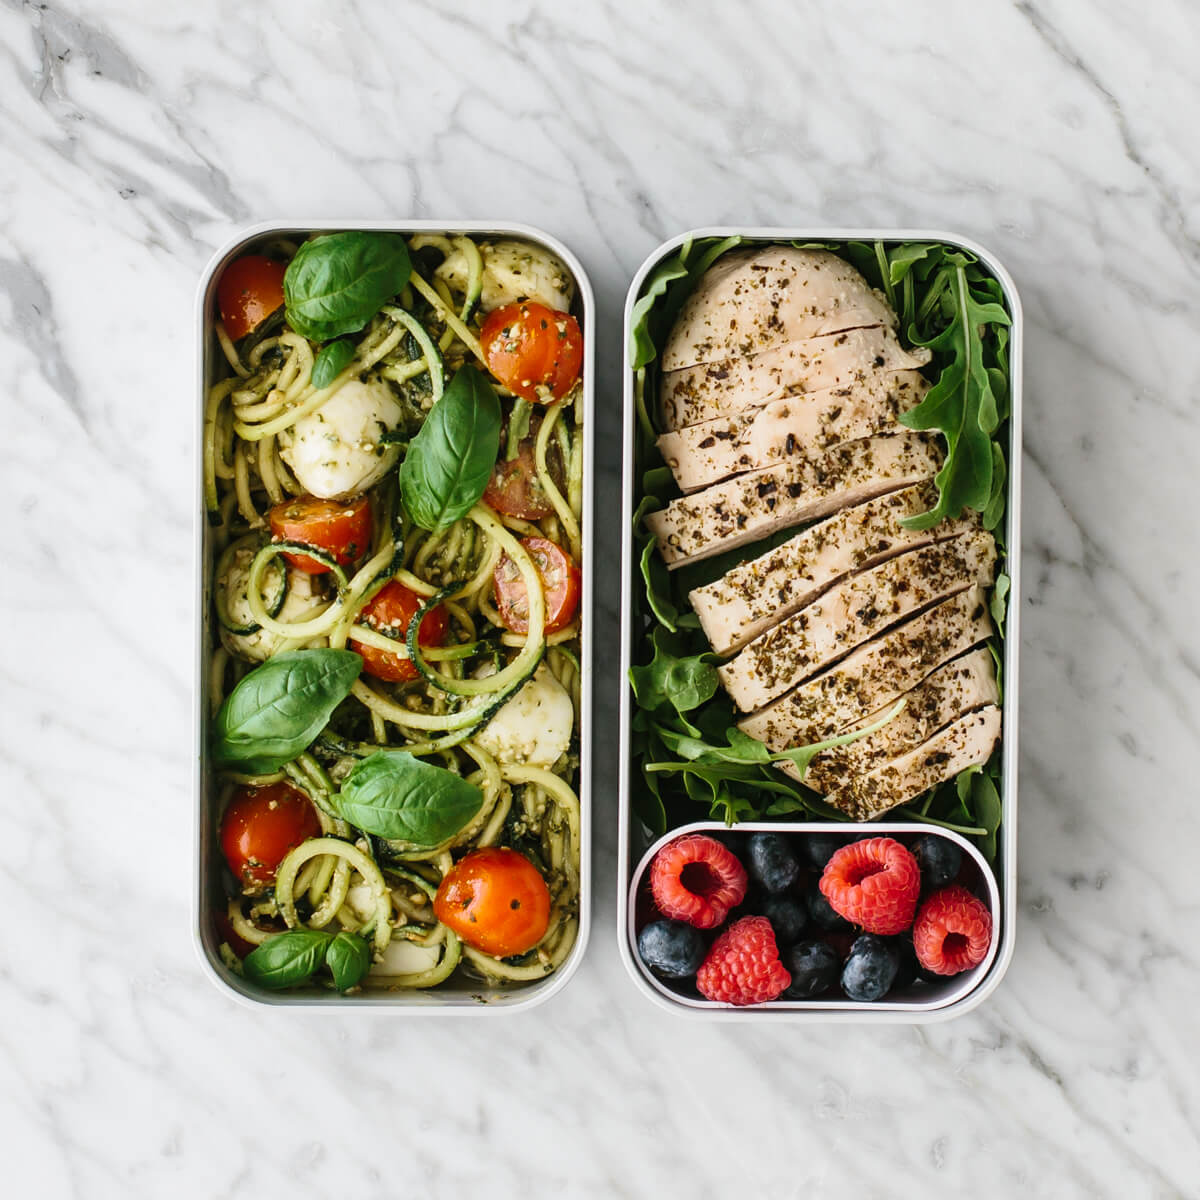 Bento box filled with zucchini noodles, chicken and berries.